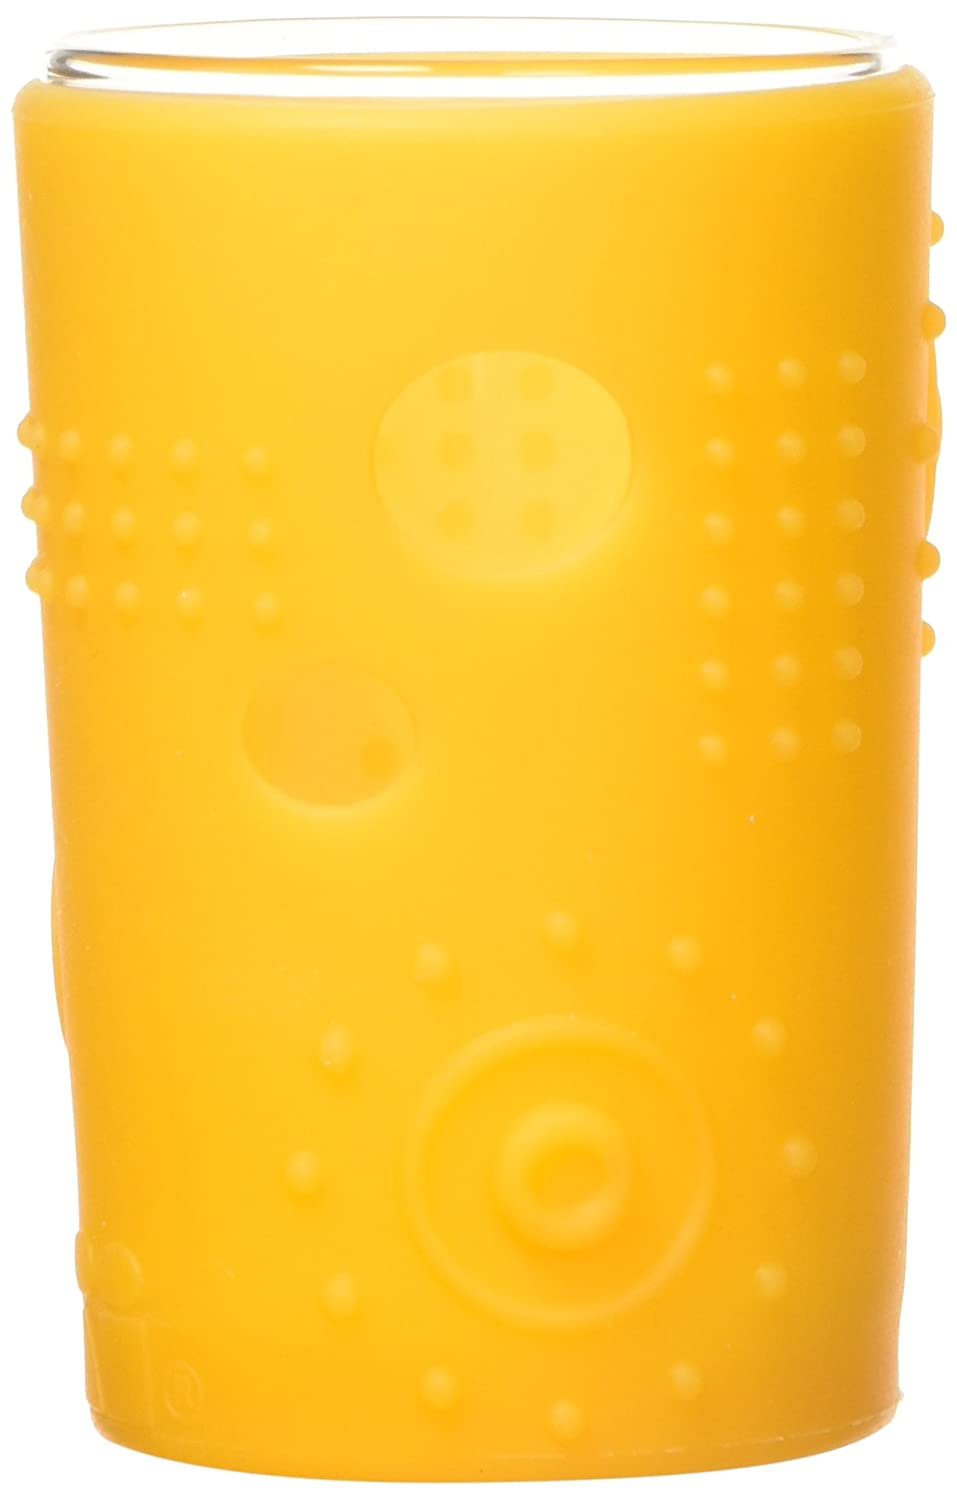 Silikids Siliskin Glass Cup with Silicone Sleeve, Sea, 24 Months, 2 Count SSHD02